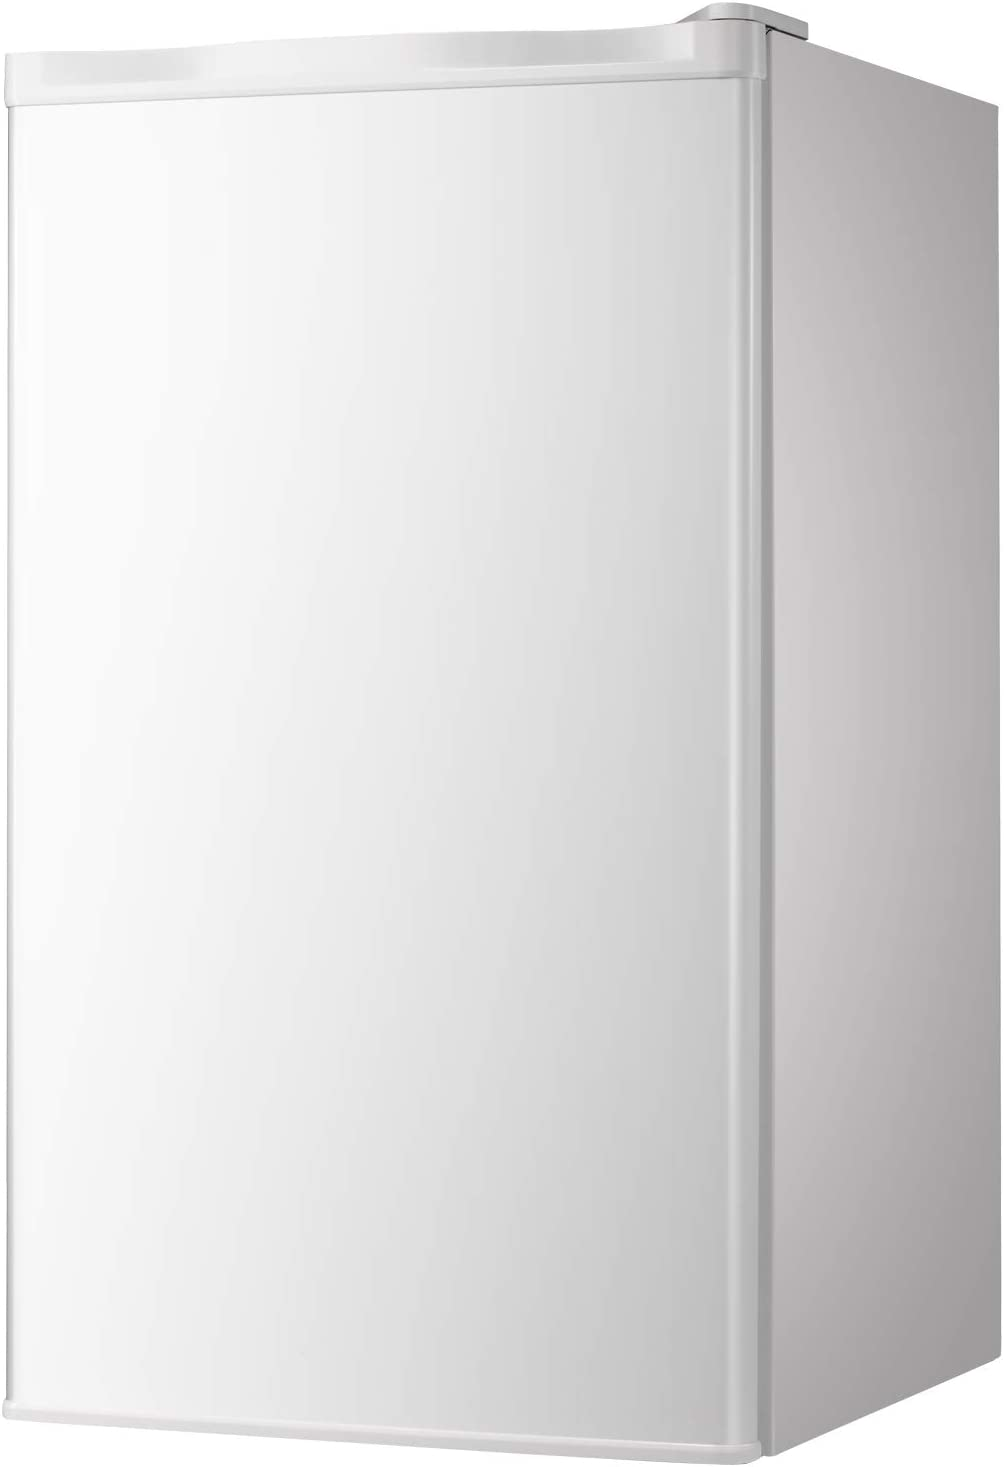 Bossin Compact Refrigerator 3.2 cu ft. Unit Small Freezer Cooler Fridge Small Drink Food Storage Machine for Office, Dorm, Apartment, Bedroom(Ivory white)